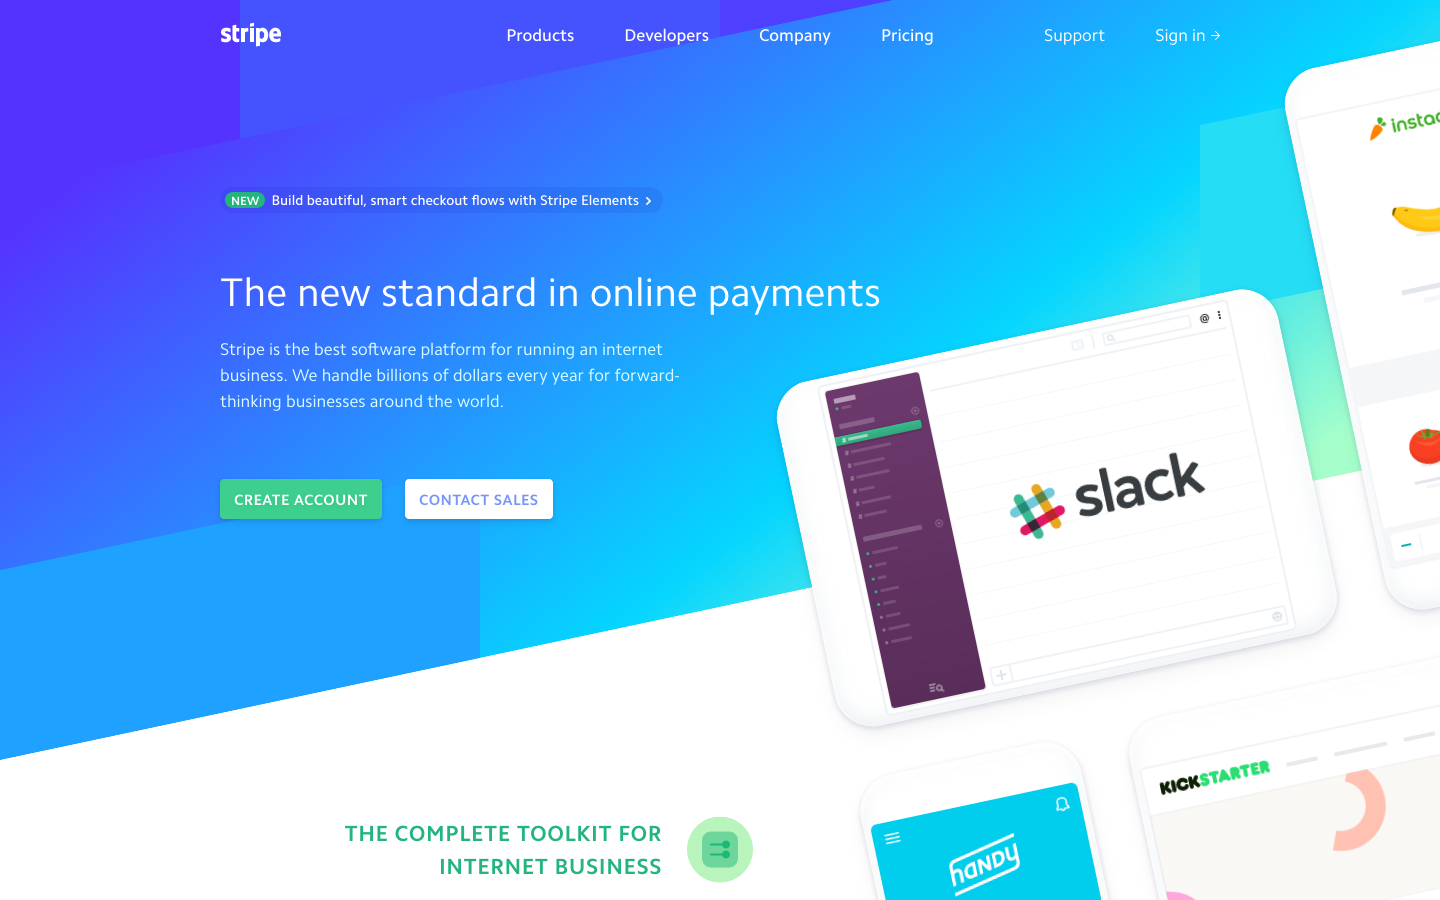 Stripe webpage screenshot